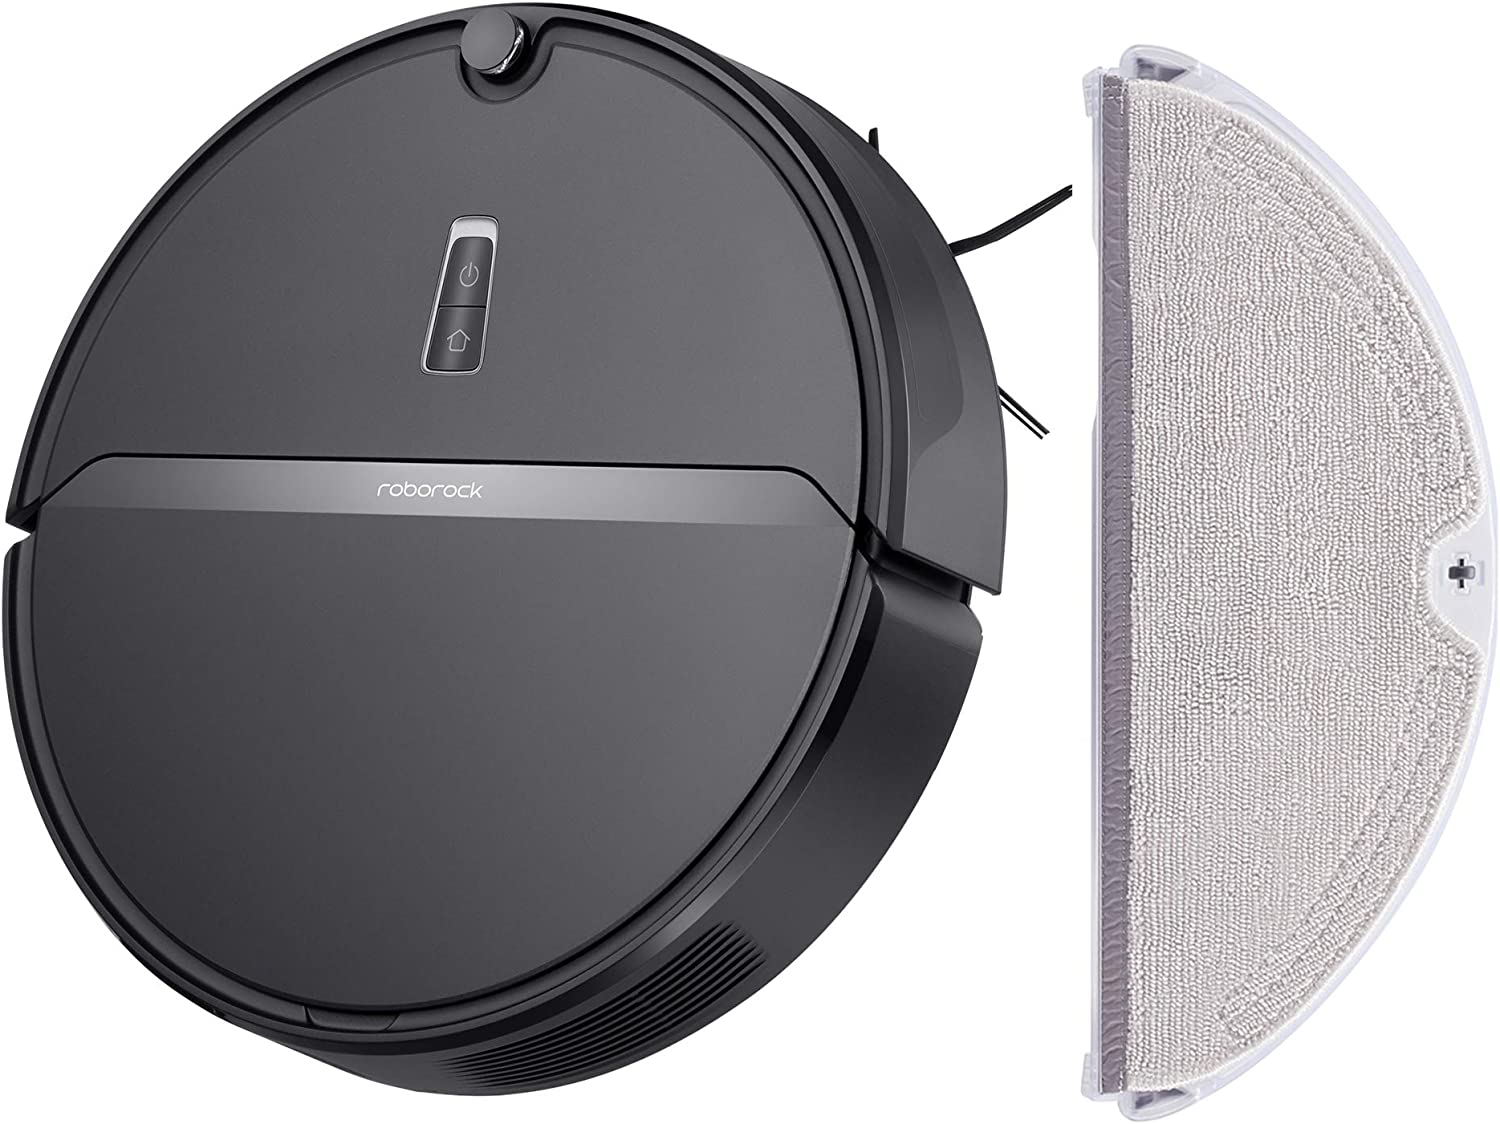 Roborock E4 Robot Vacuum Cleaner and Water Tank Bundle